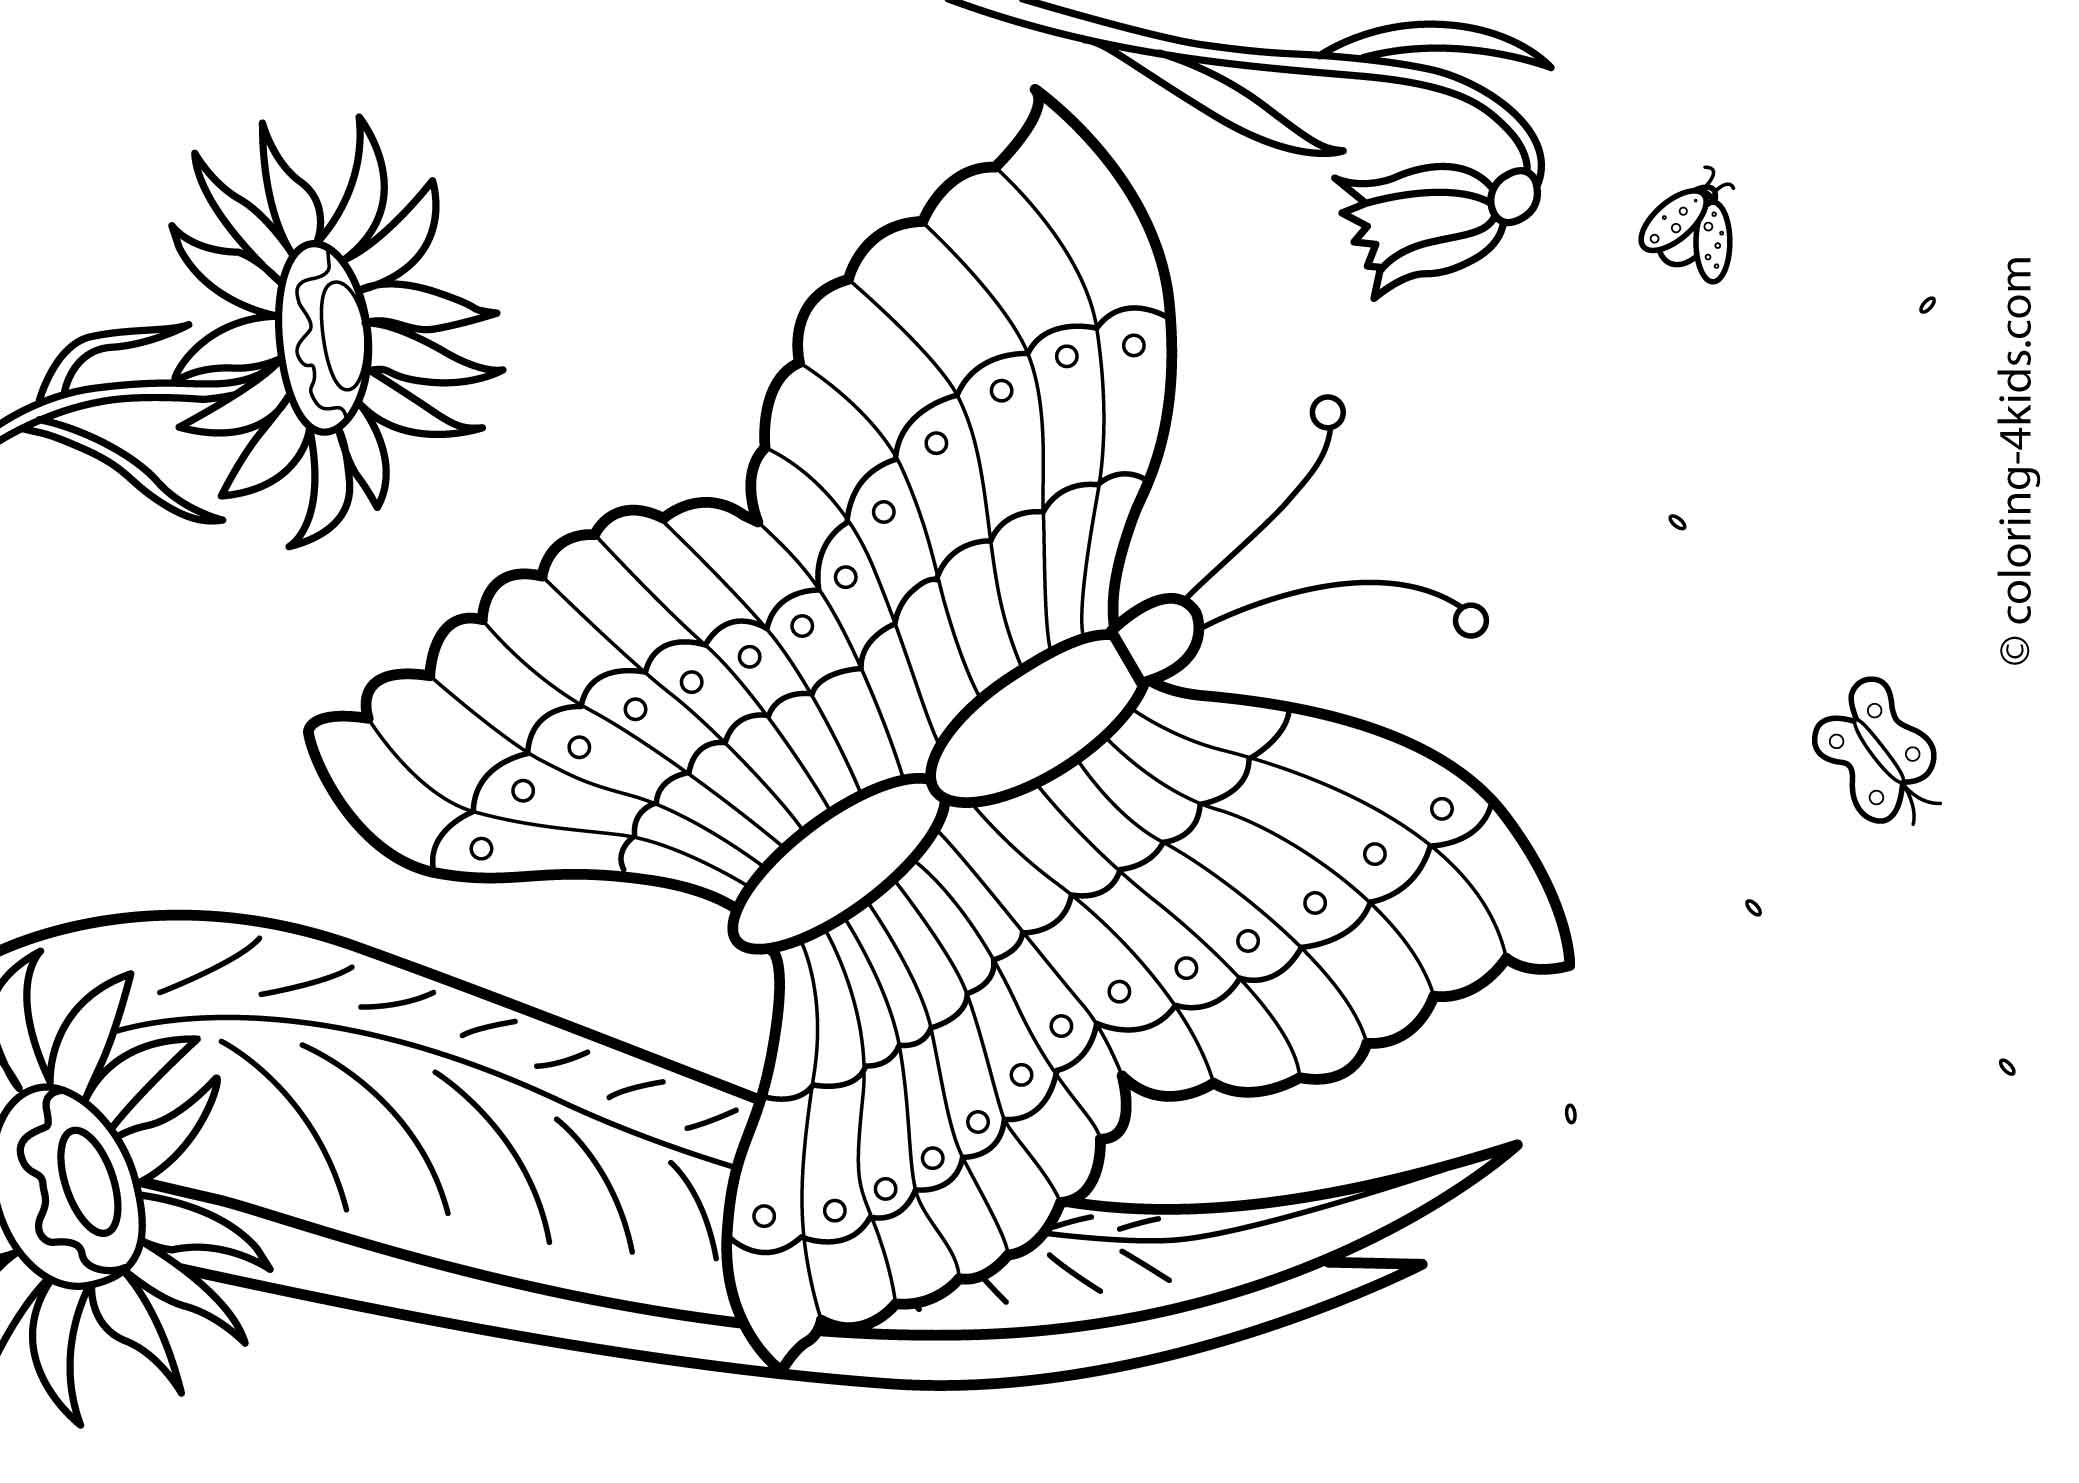 Free Printable Summer Coloring Pages  27 Summer season coloring pages part 2